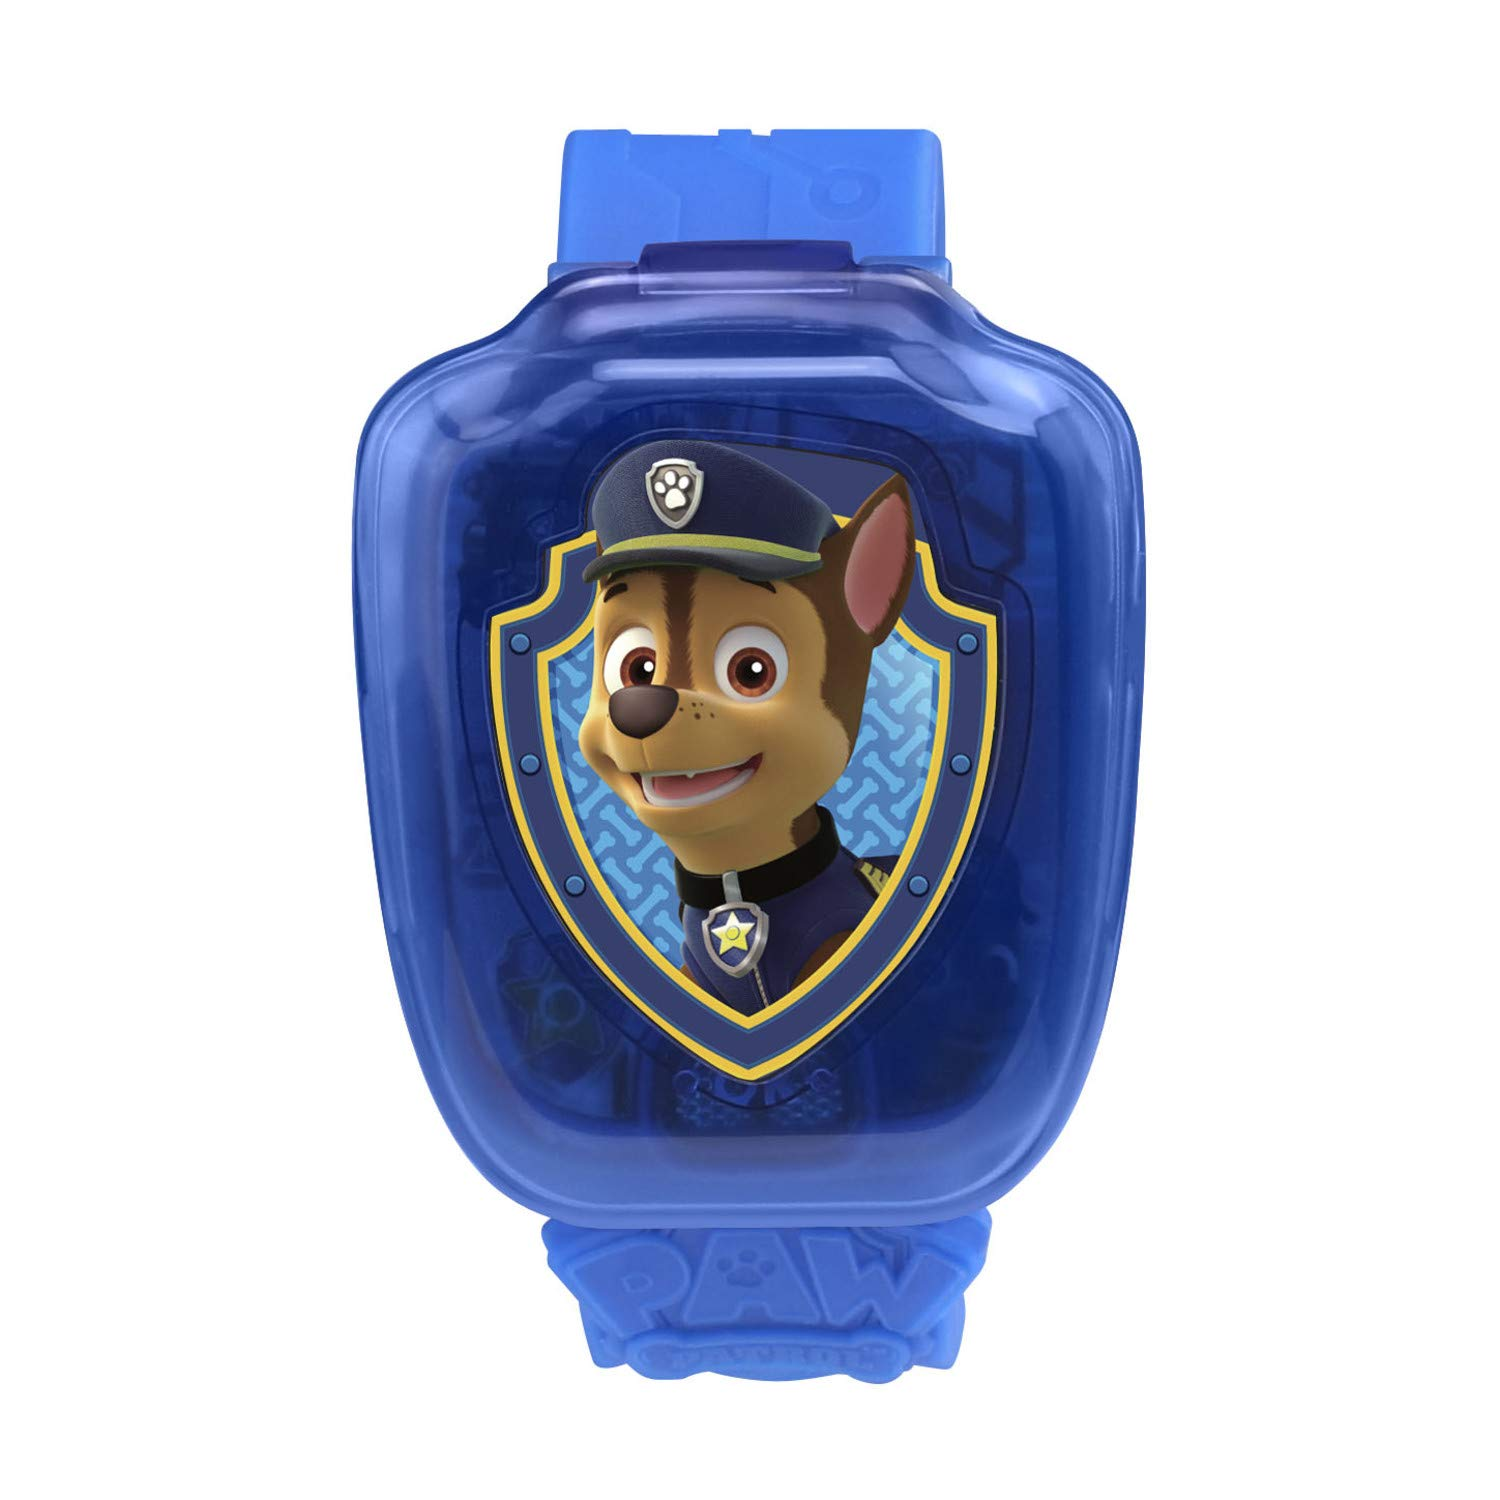 VTech Paw Patrol Chase Learning Watch, Blue by VTech (Image #2)